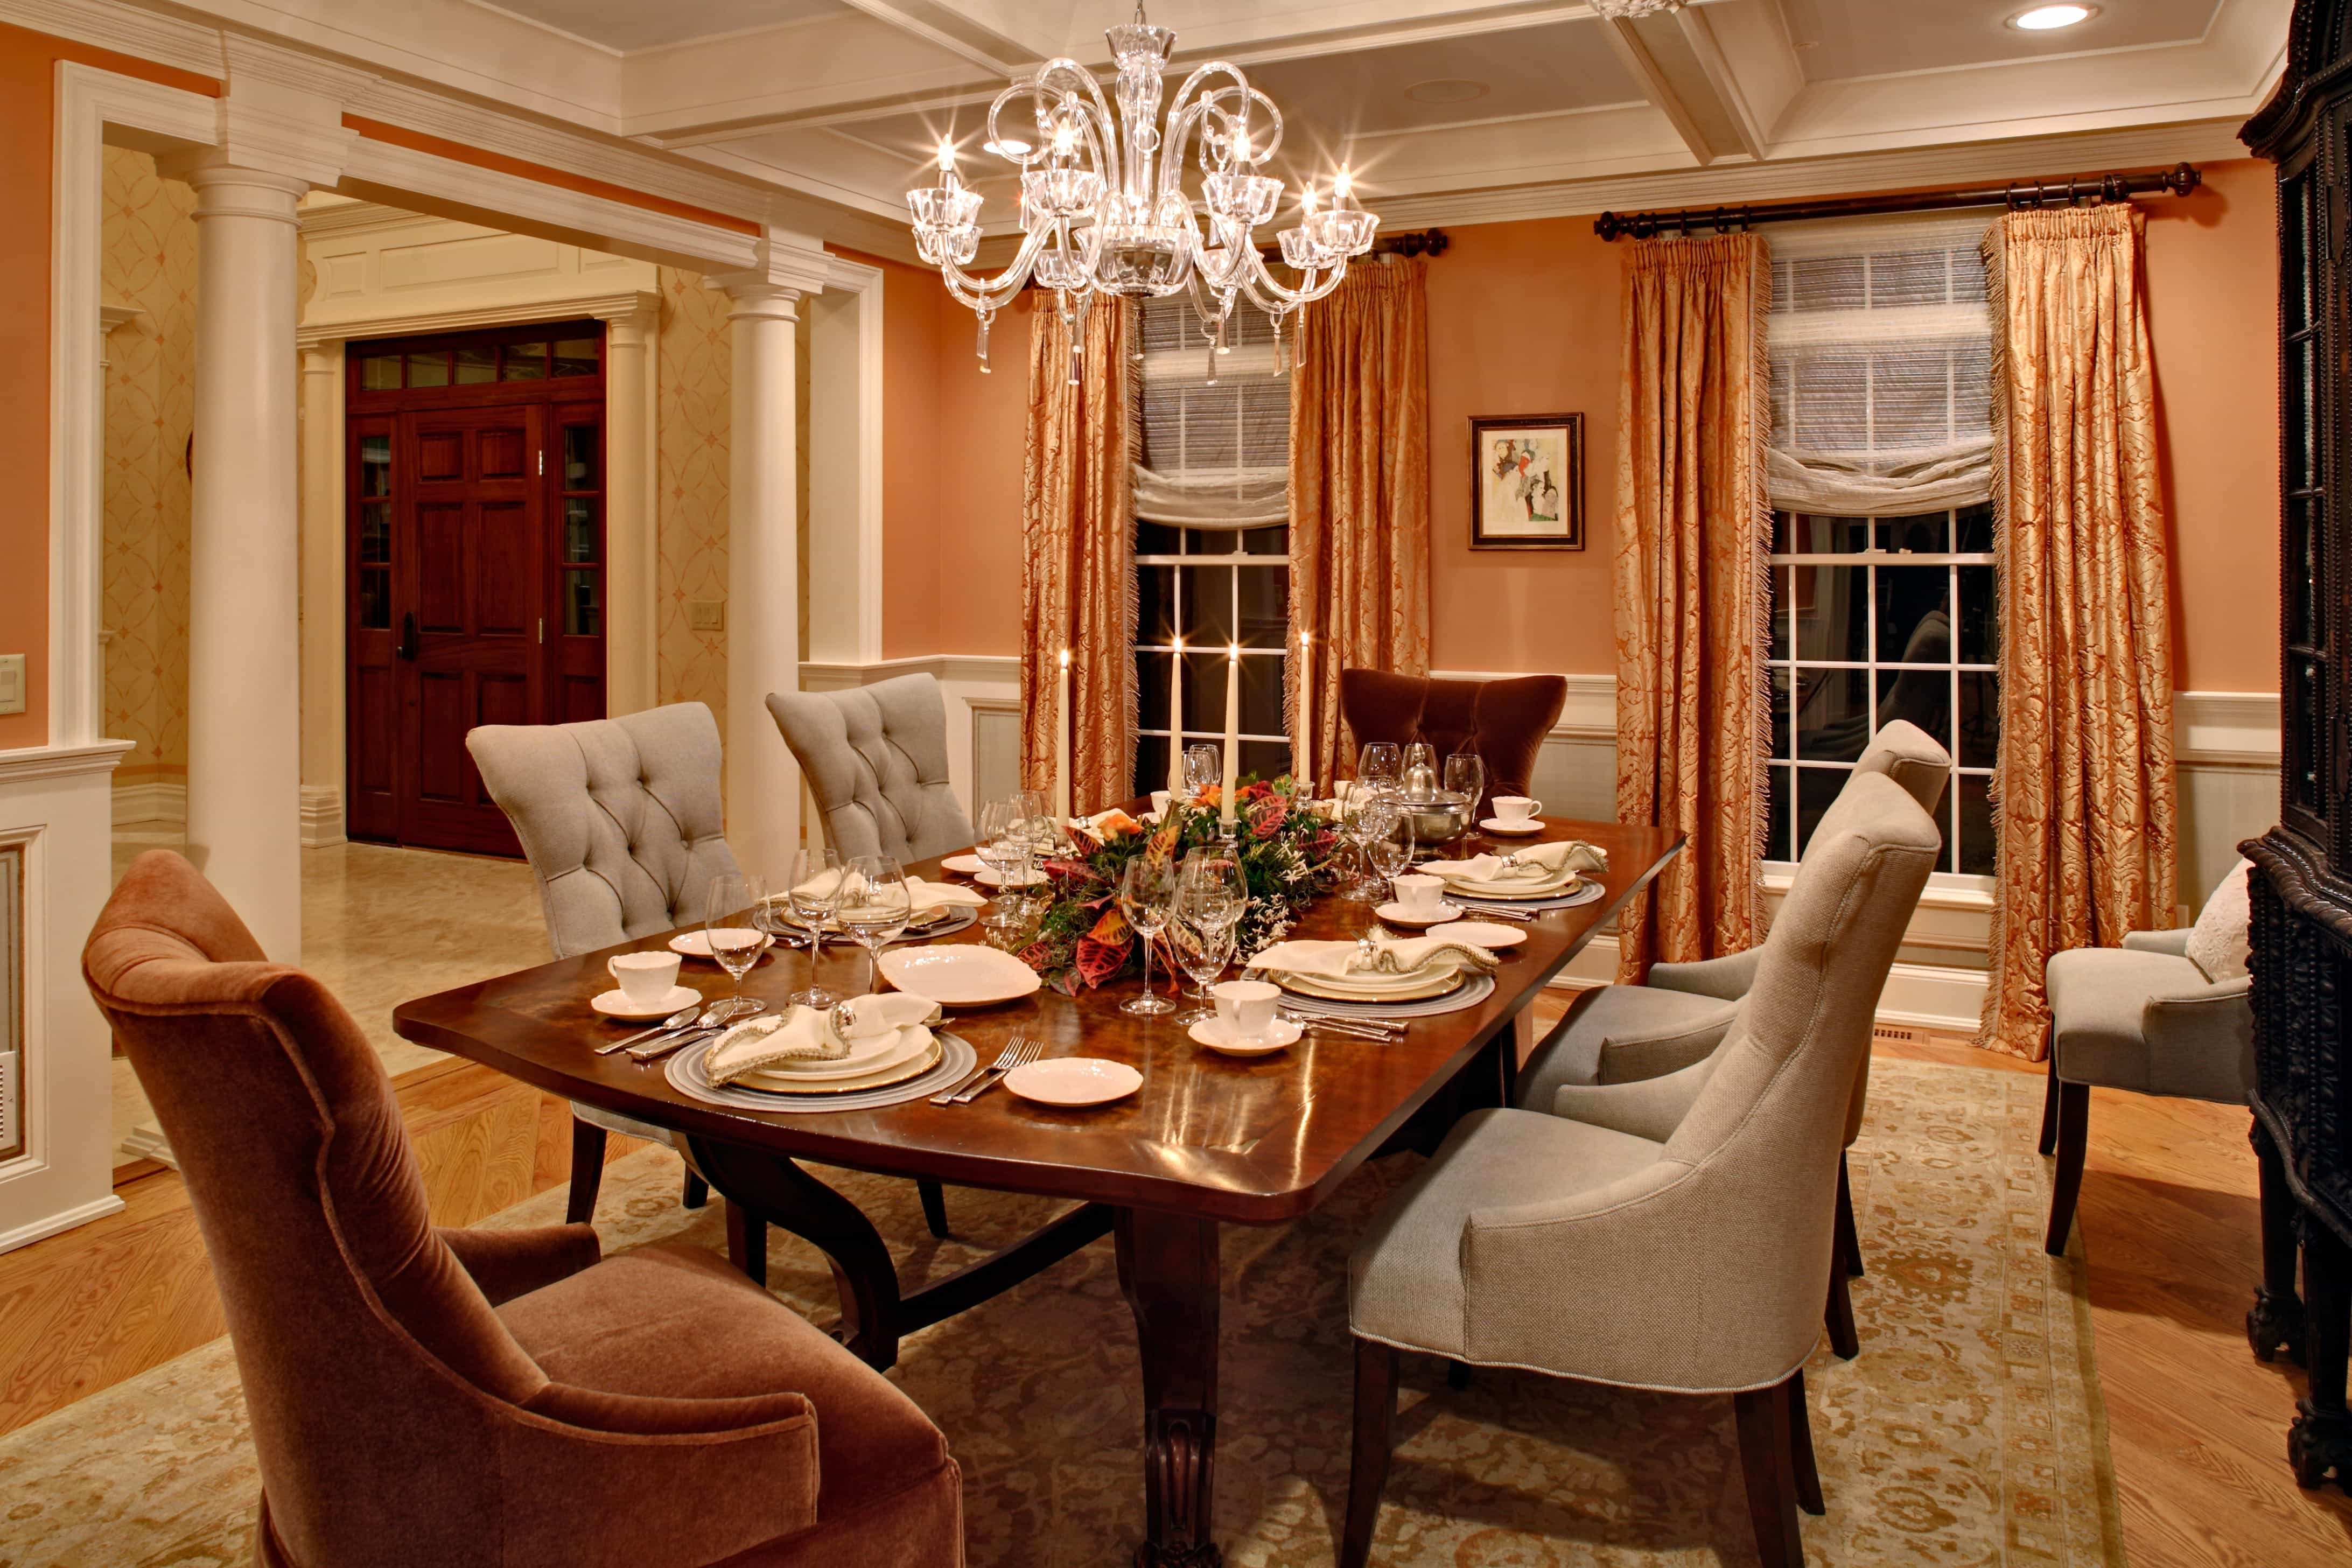 Transitional Romantic Dining Room With Peach Tones (Photo 15 of 21)